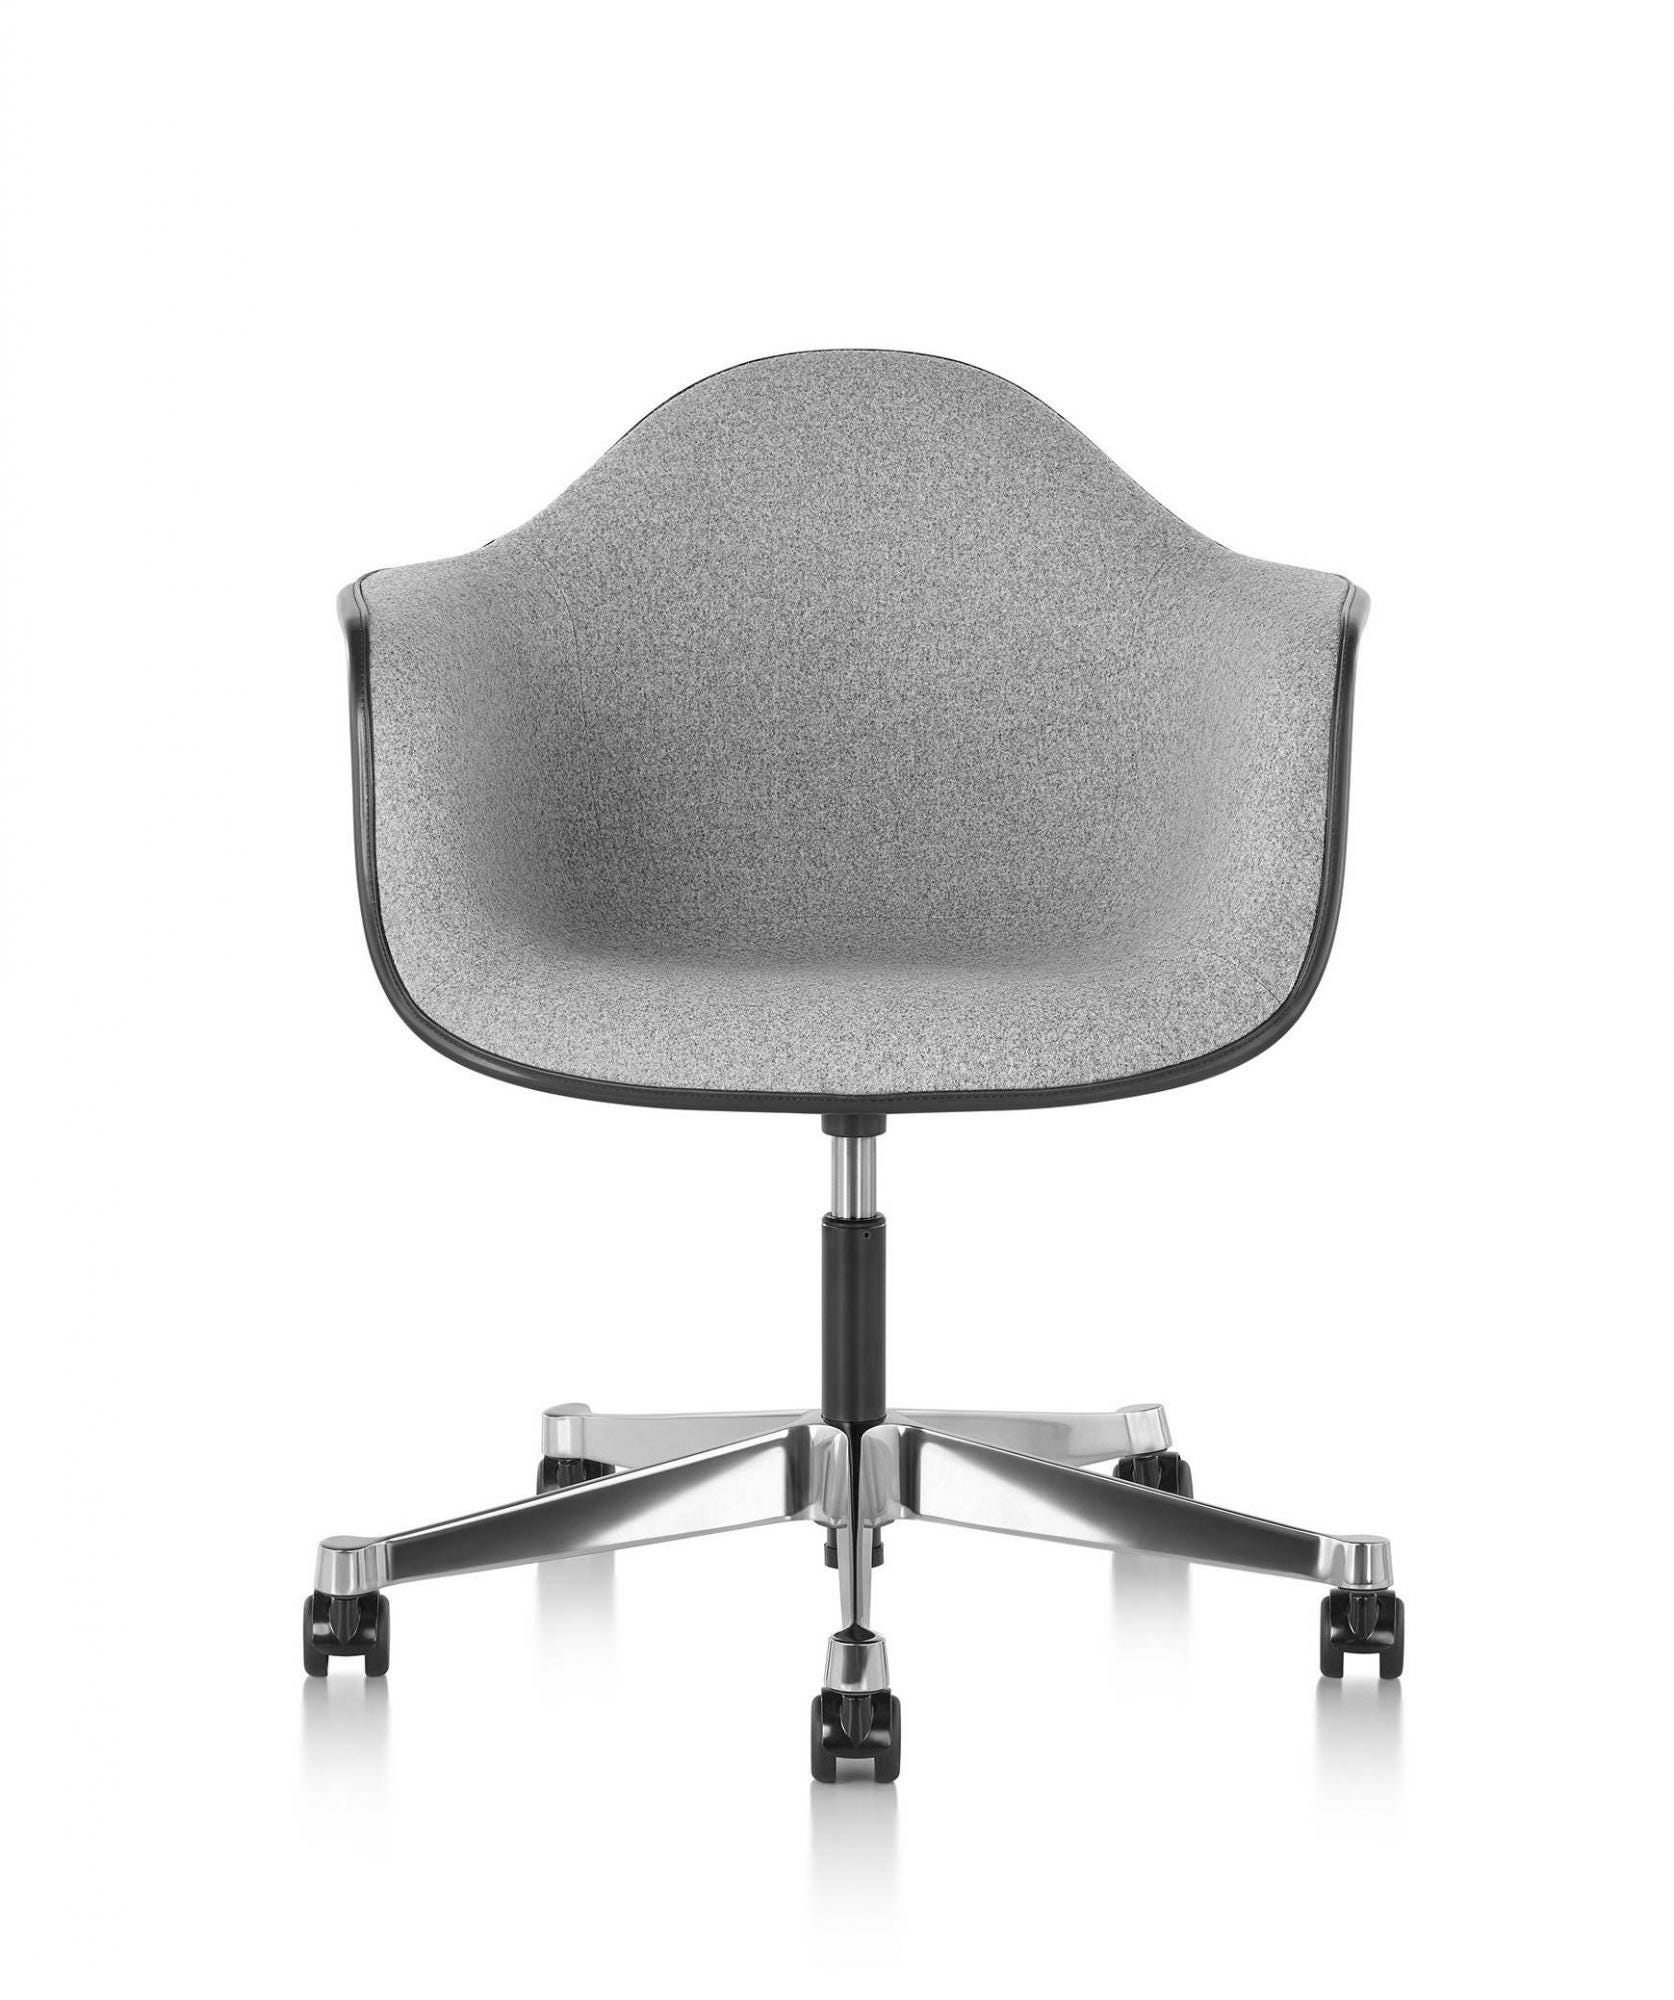 Herman Miller Eames® Molded Plastic Upholstered Task Armchair - GR on office cubicles, office computers, office stools, office desks, office tables, office pens, office trash can, office reception, office lobby, office footrest, office lamps, office furniture, office beds, office counters, office bookcases, office sofa sets, office kitchen, office accessories, office employees, office couch,